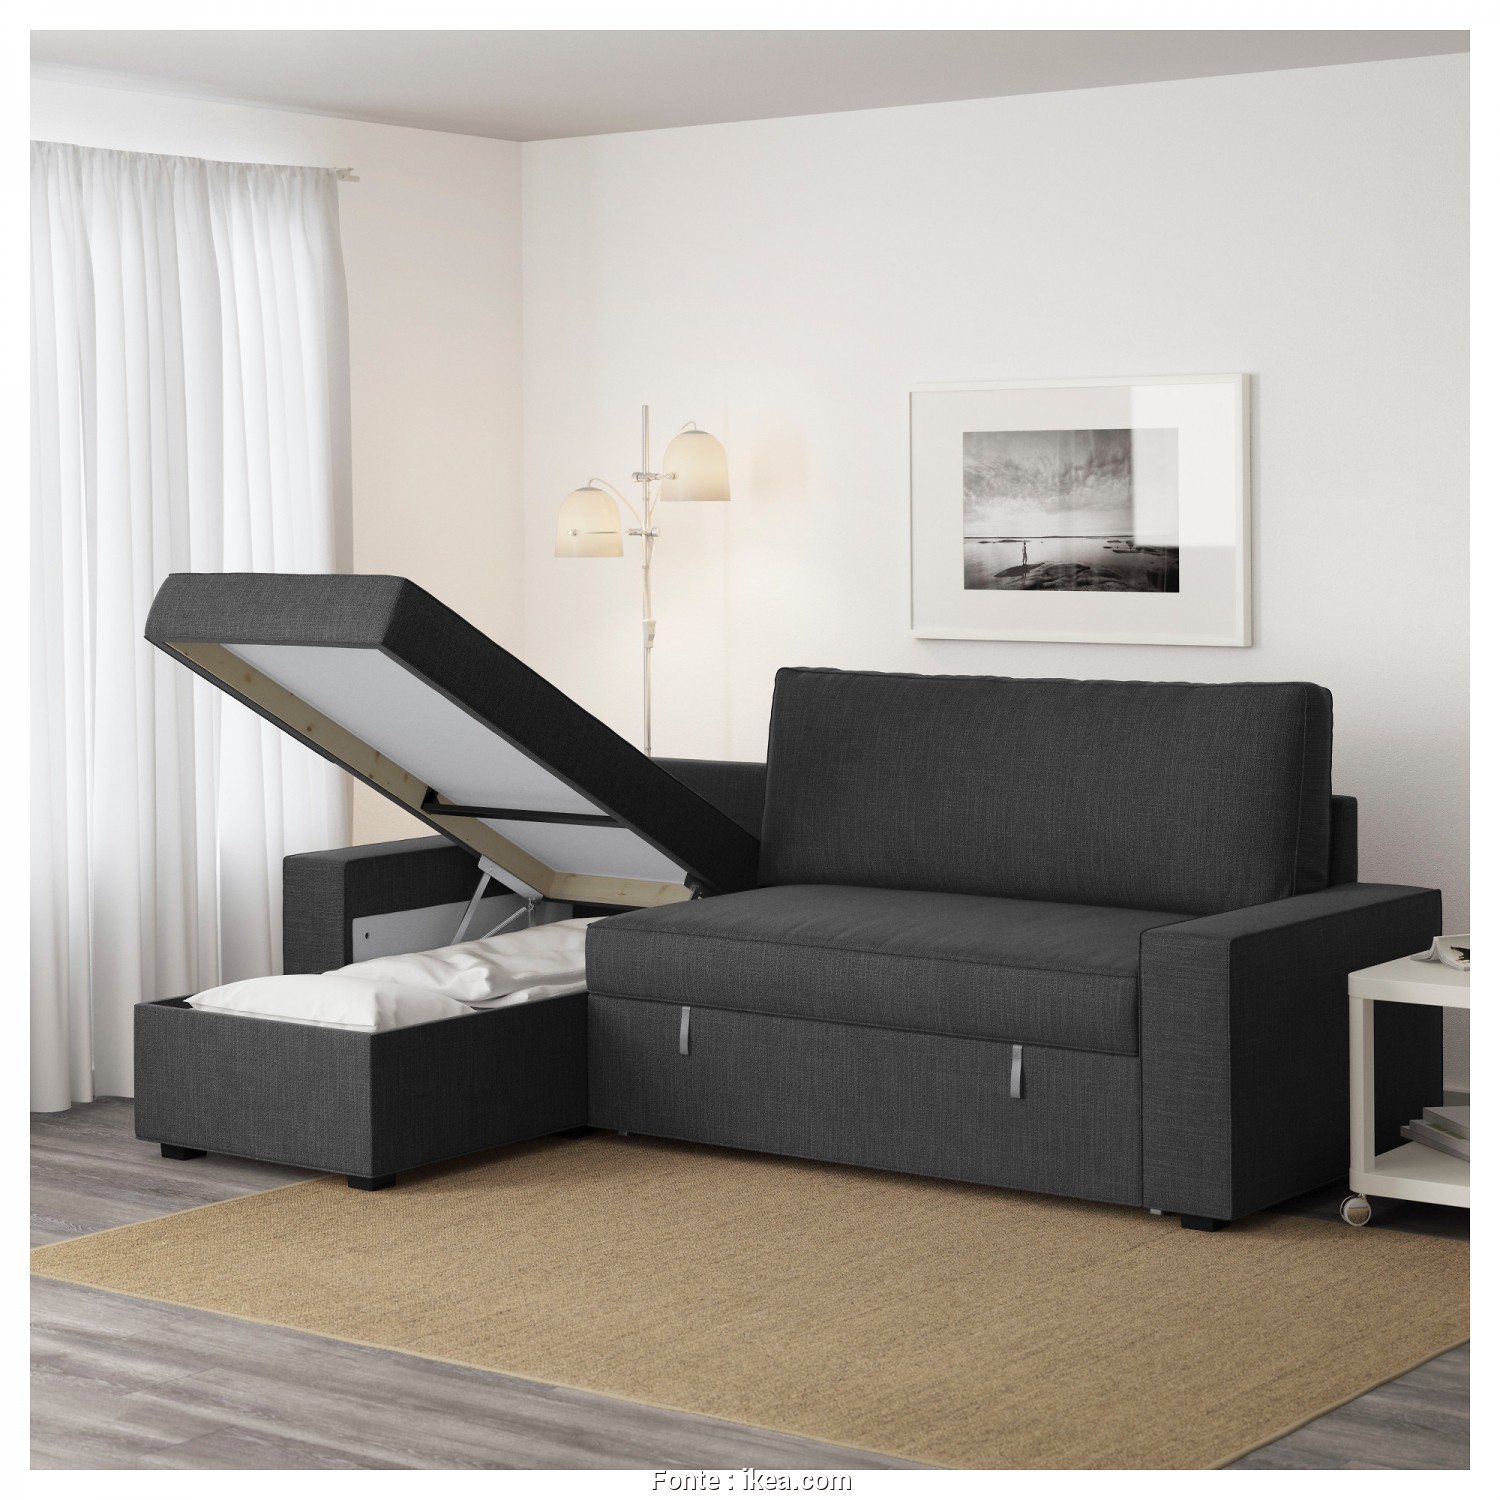 Ikea Vilasund Kanepe, Eccezionale VILASUND Sofa, With Chaise Longue Hillared Anthracite